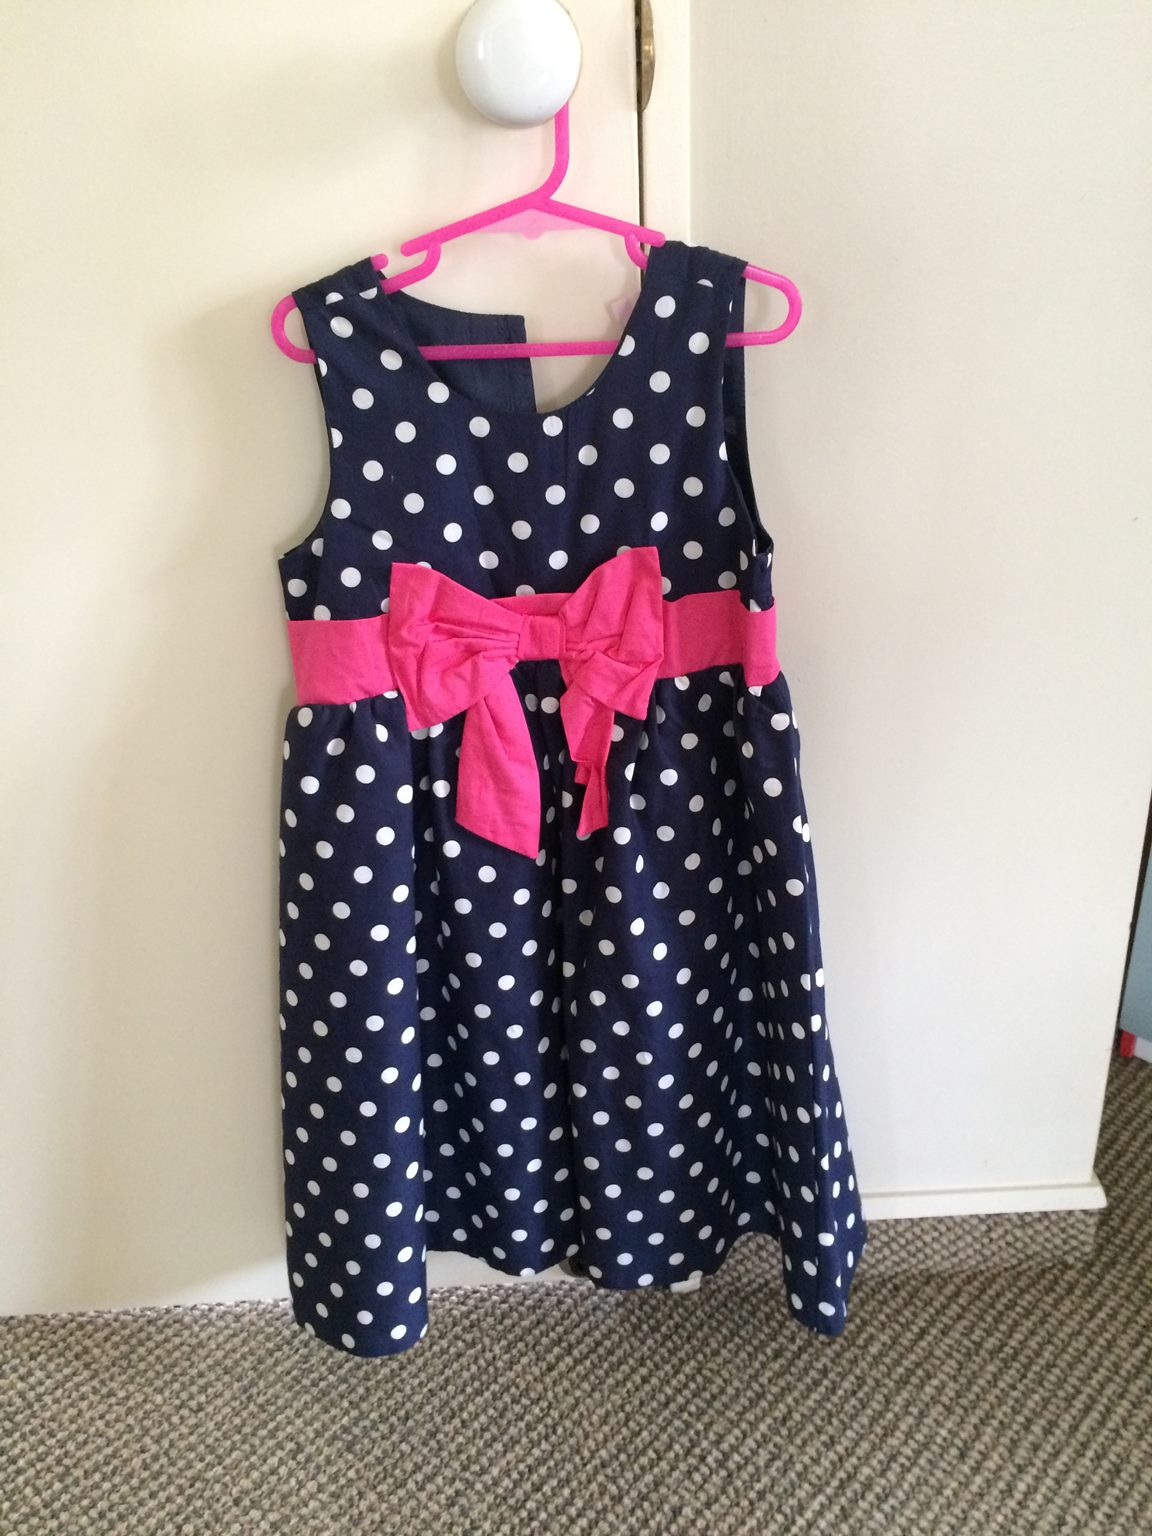 5b6aacfe5 New Tickled Pink Size 6 years Super Cute Spotty Navy, White and Pink ...